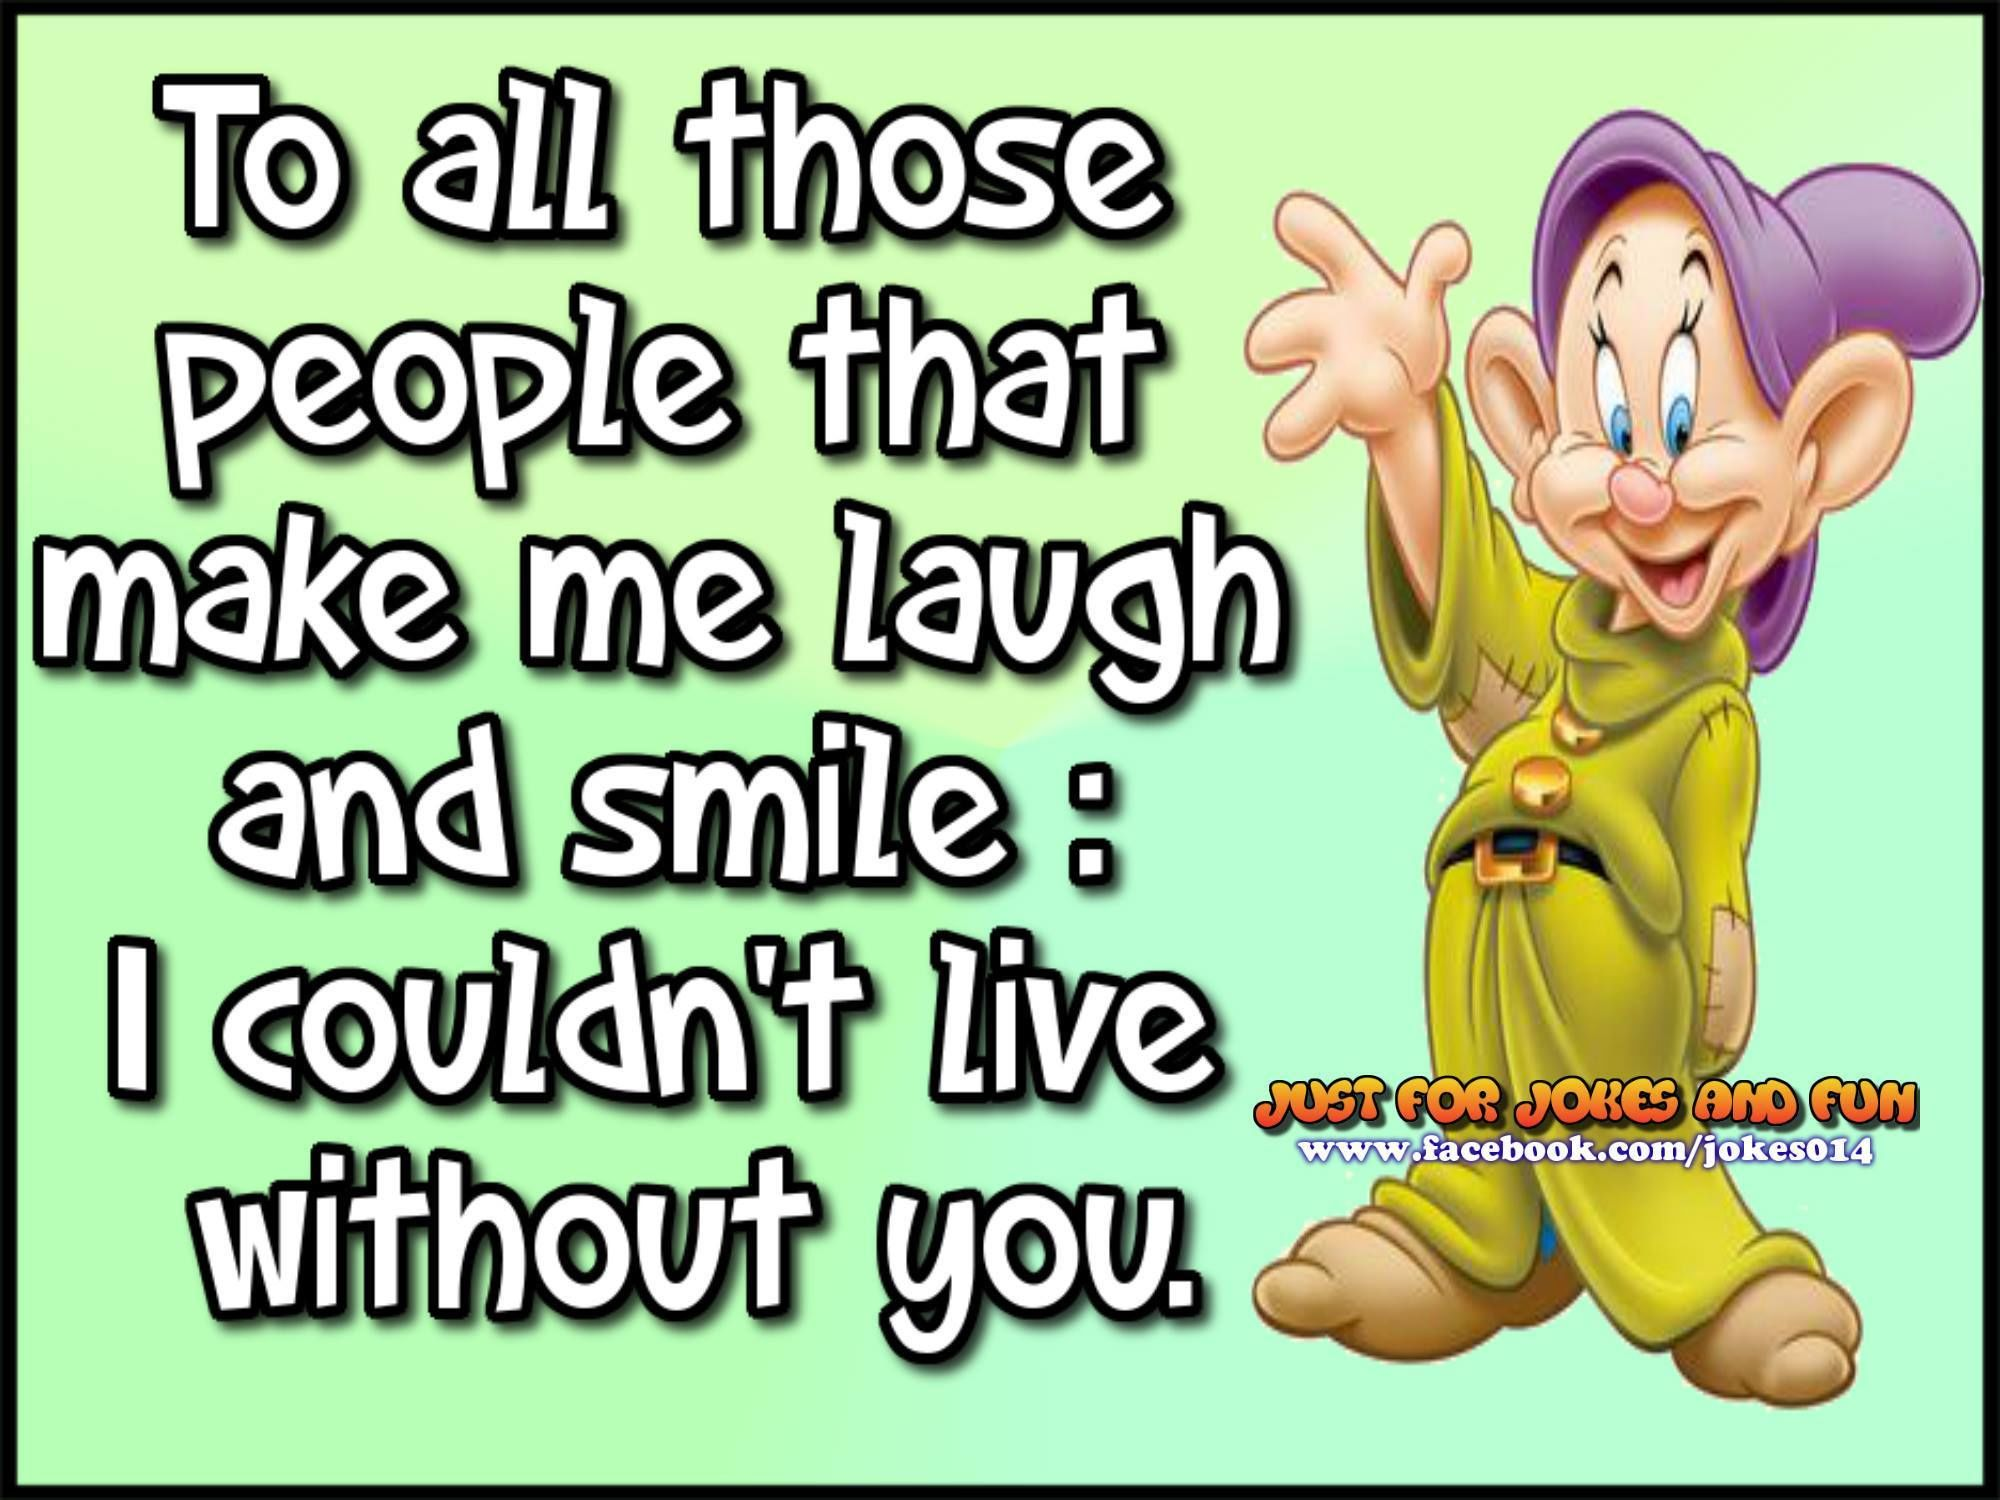 30 Funny Christmas Quotes Sayings That Make You Laugh: To All The People That Made Me Laugh I Couldnt Live